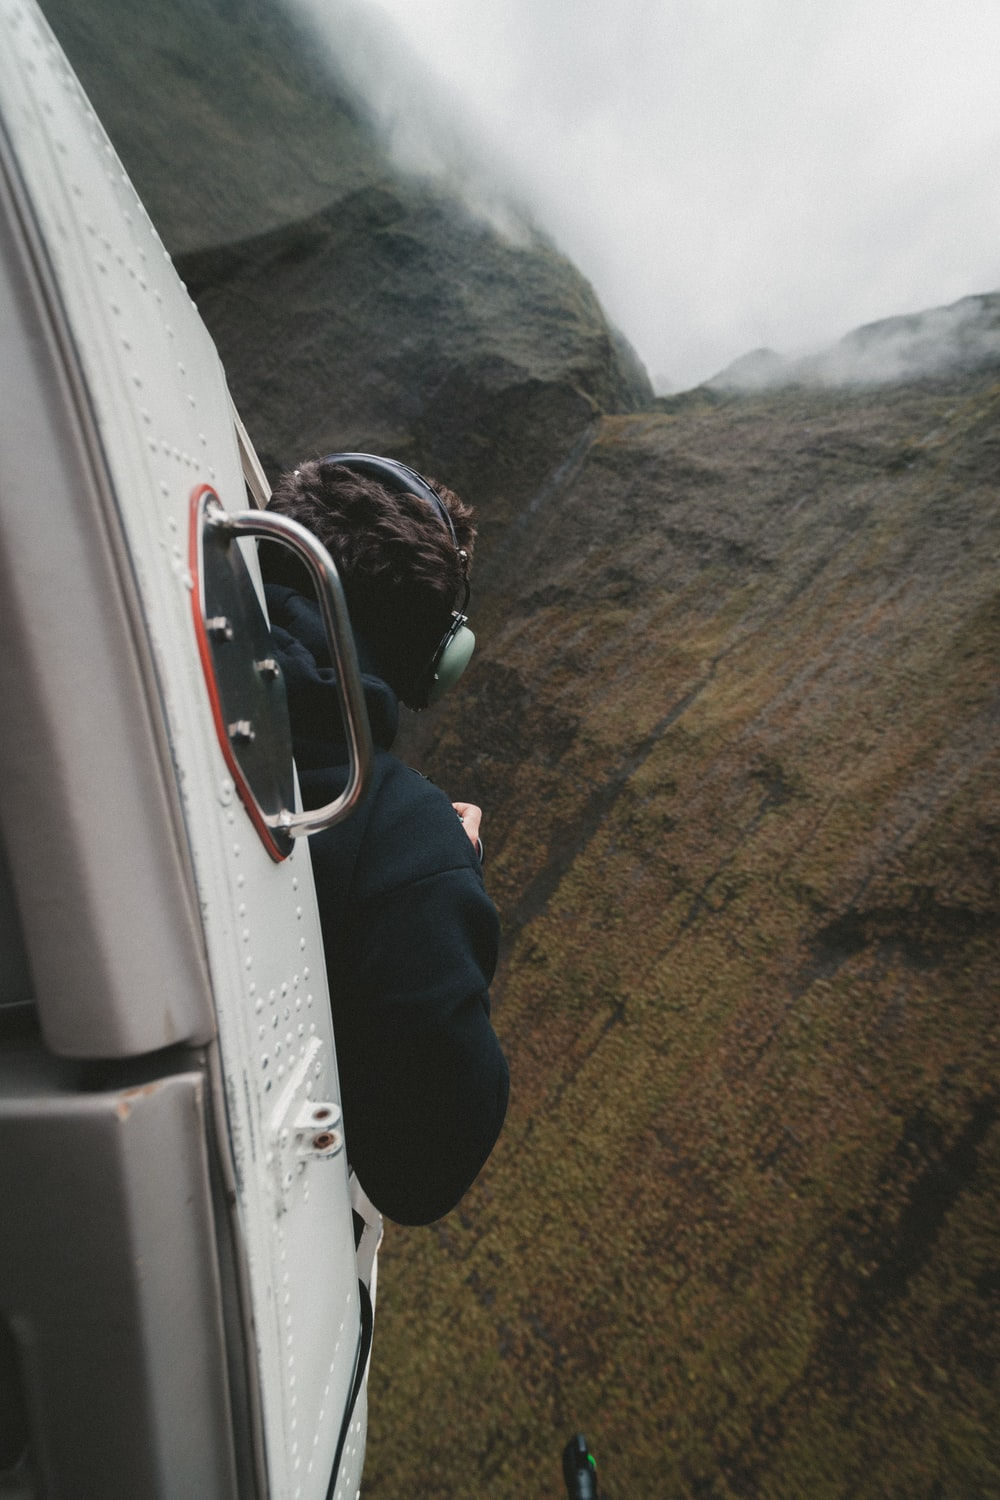 man riding in plane looking at mountain